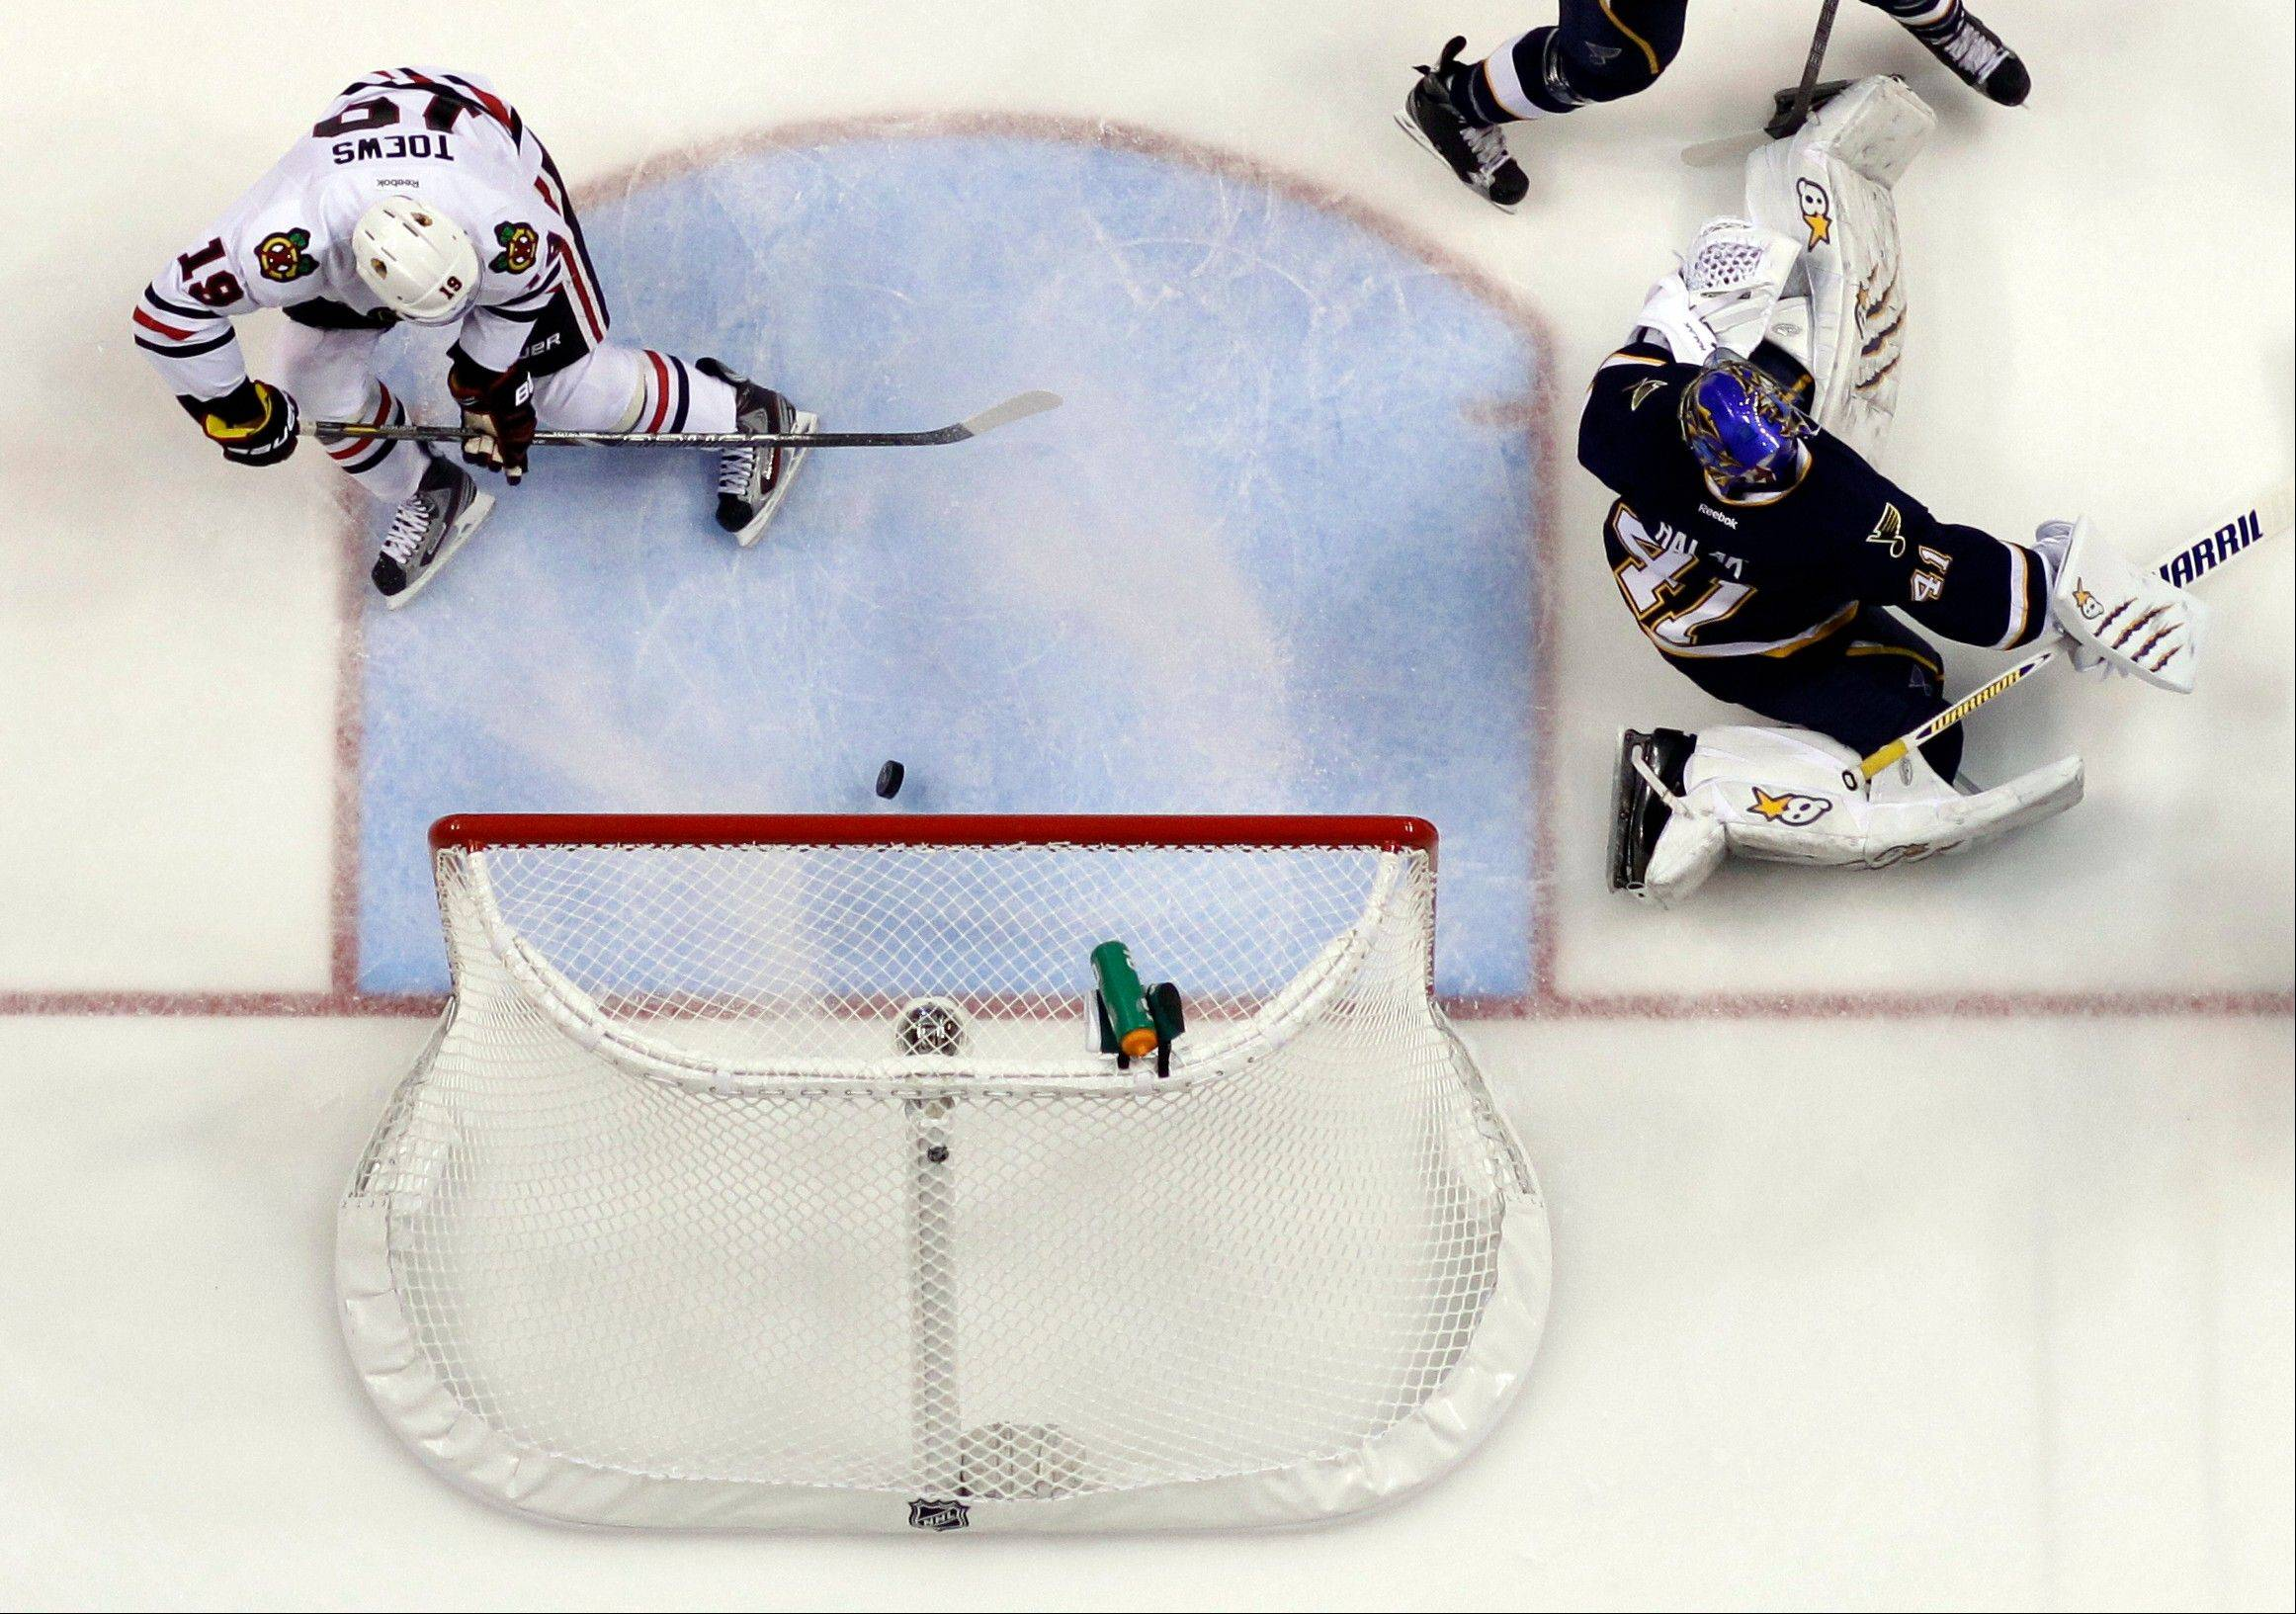 Chicago Blackhawks' Jonathan Toews scores past St. Louis Blues goalie Jaroslav Halak during the first period.